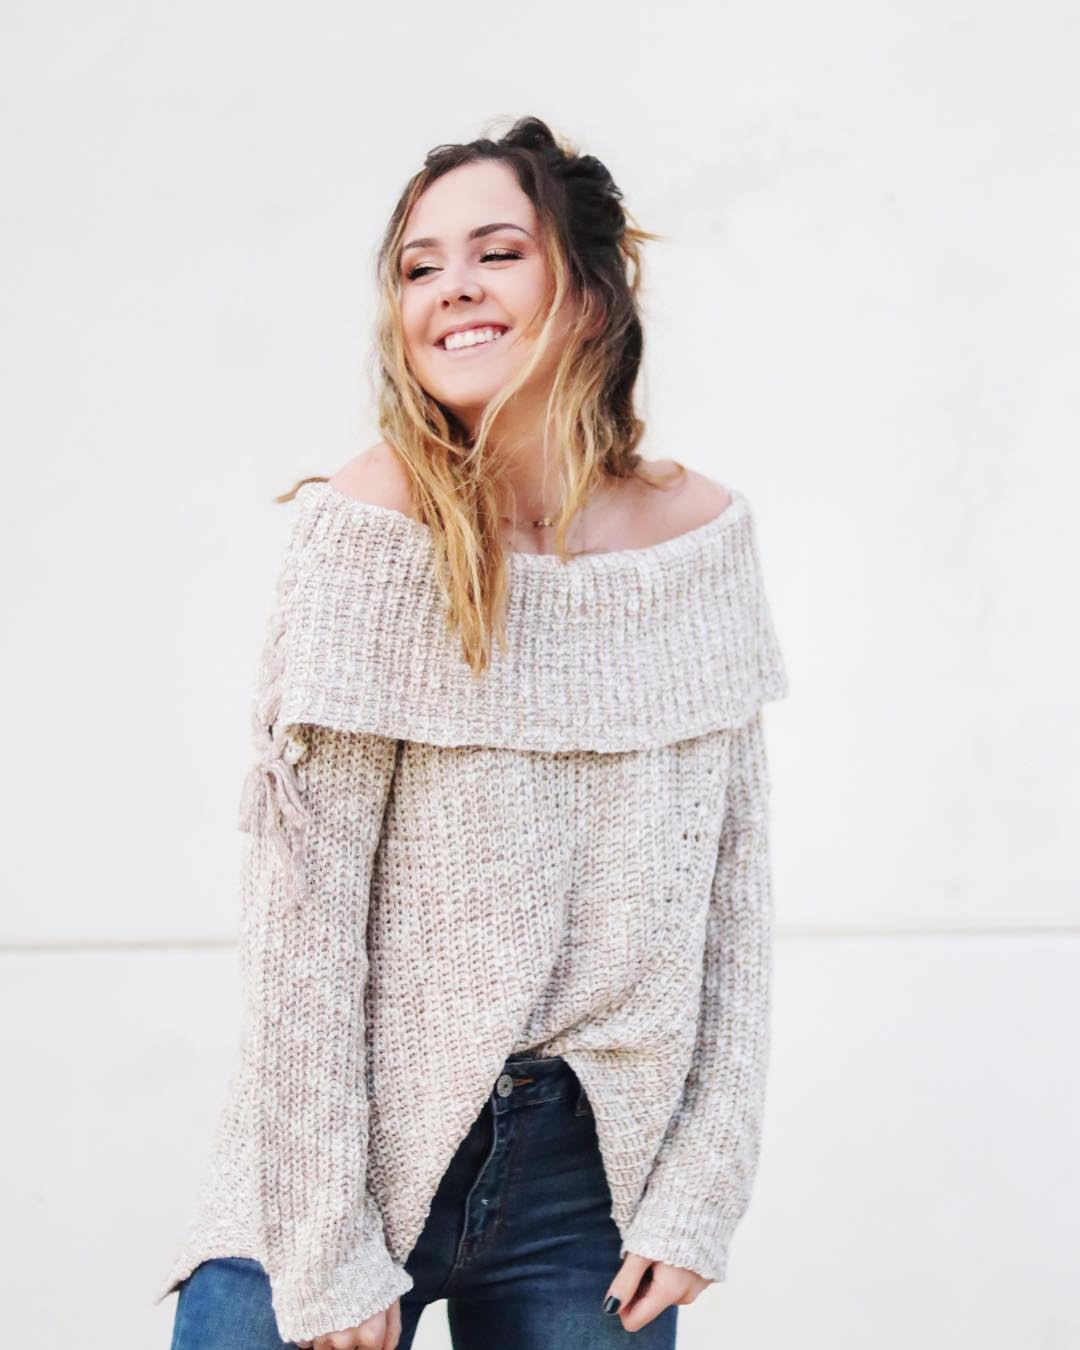 30  Attractive And Stylish Fall Outfits For The Perfectly Trendy Look